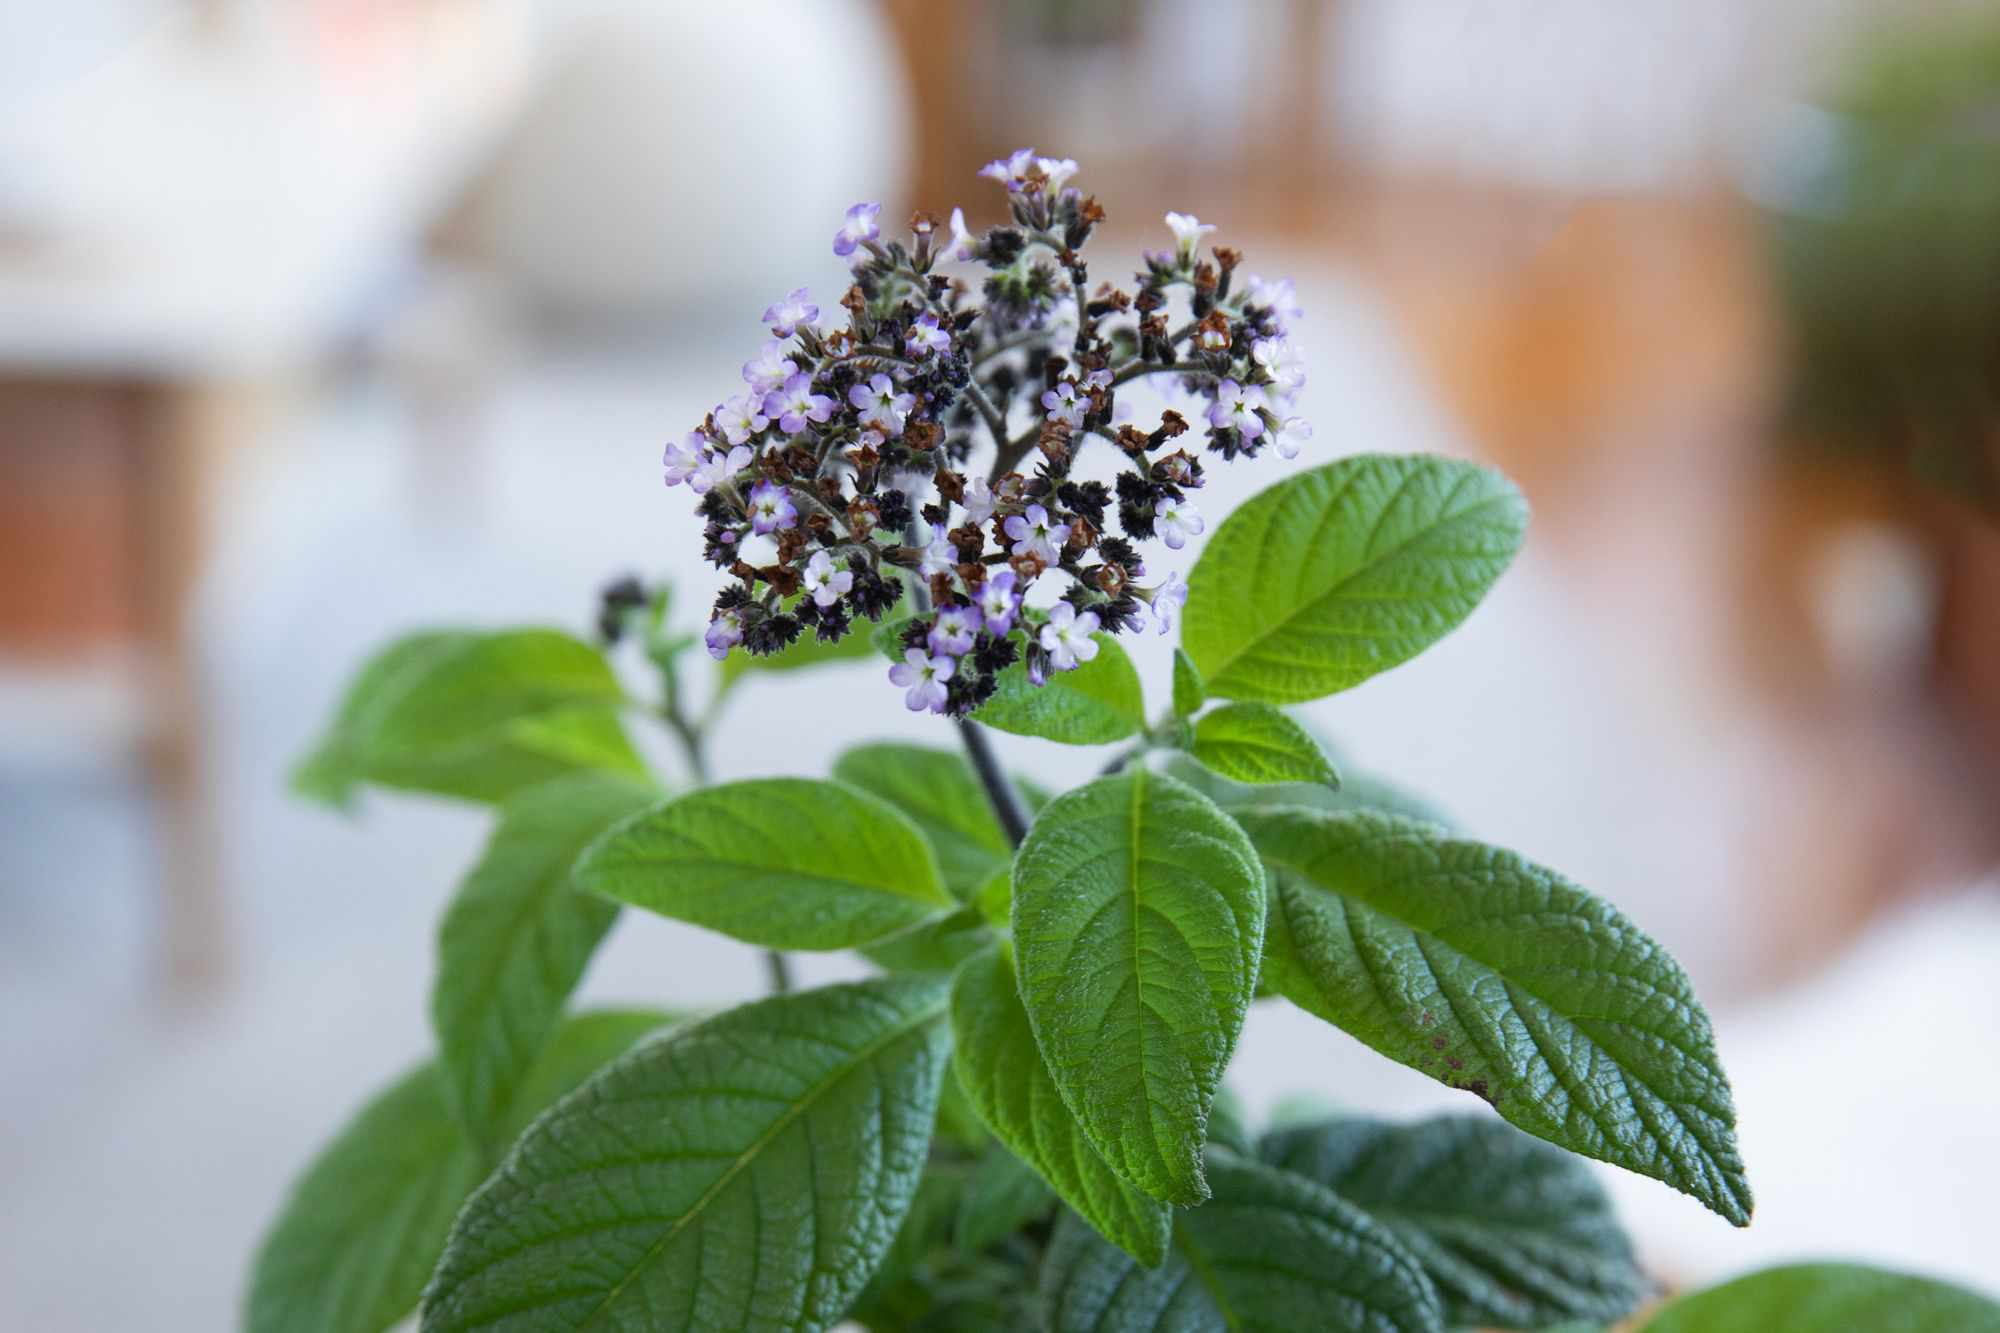 Heliotrope plant with small light purple and dark purple flower clusters on top of leaves